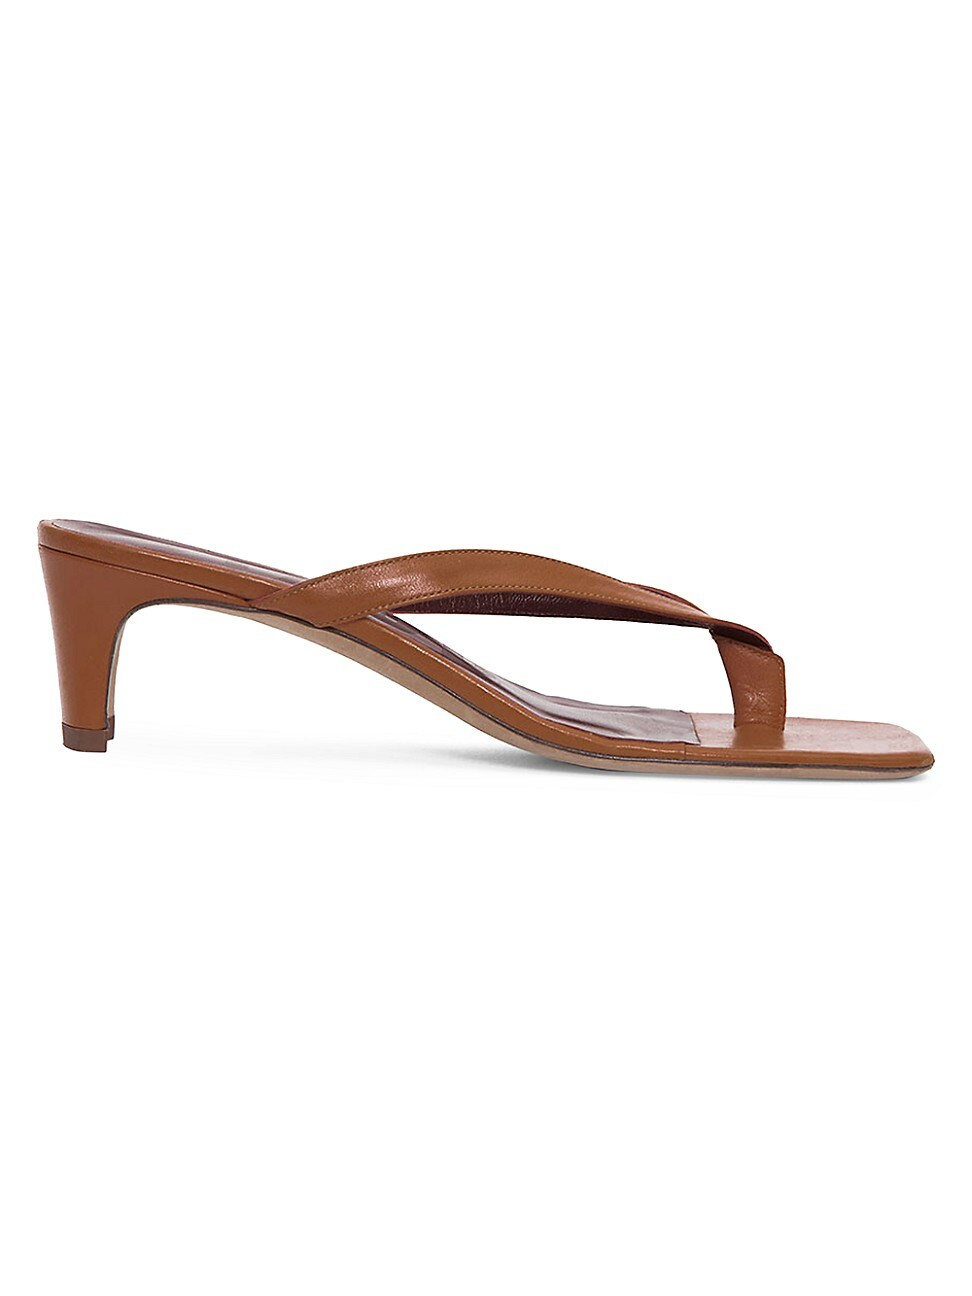 Staud Leathers WOMEN'S AUDREY SQUARE-TOE LEATHER THONG SANDALS